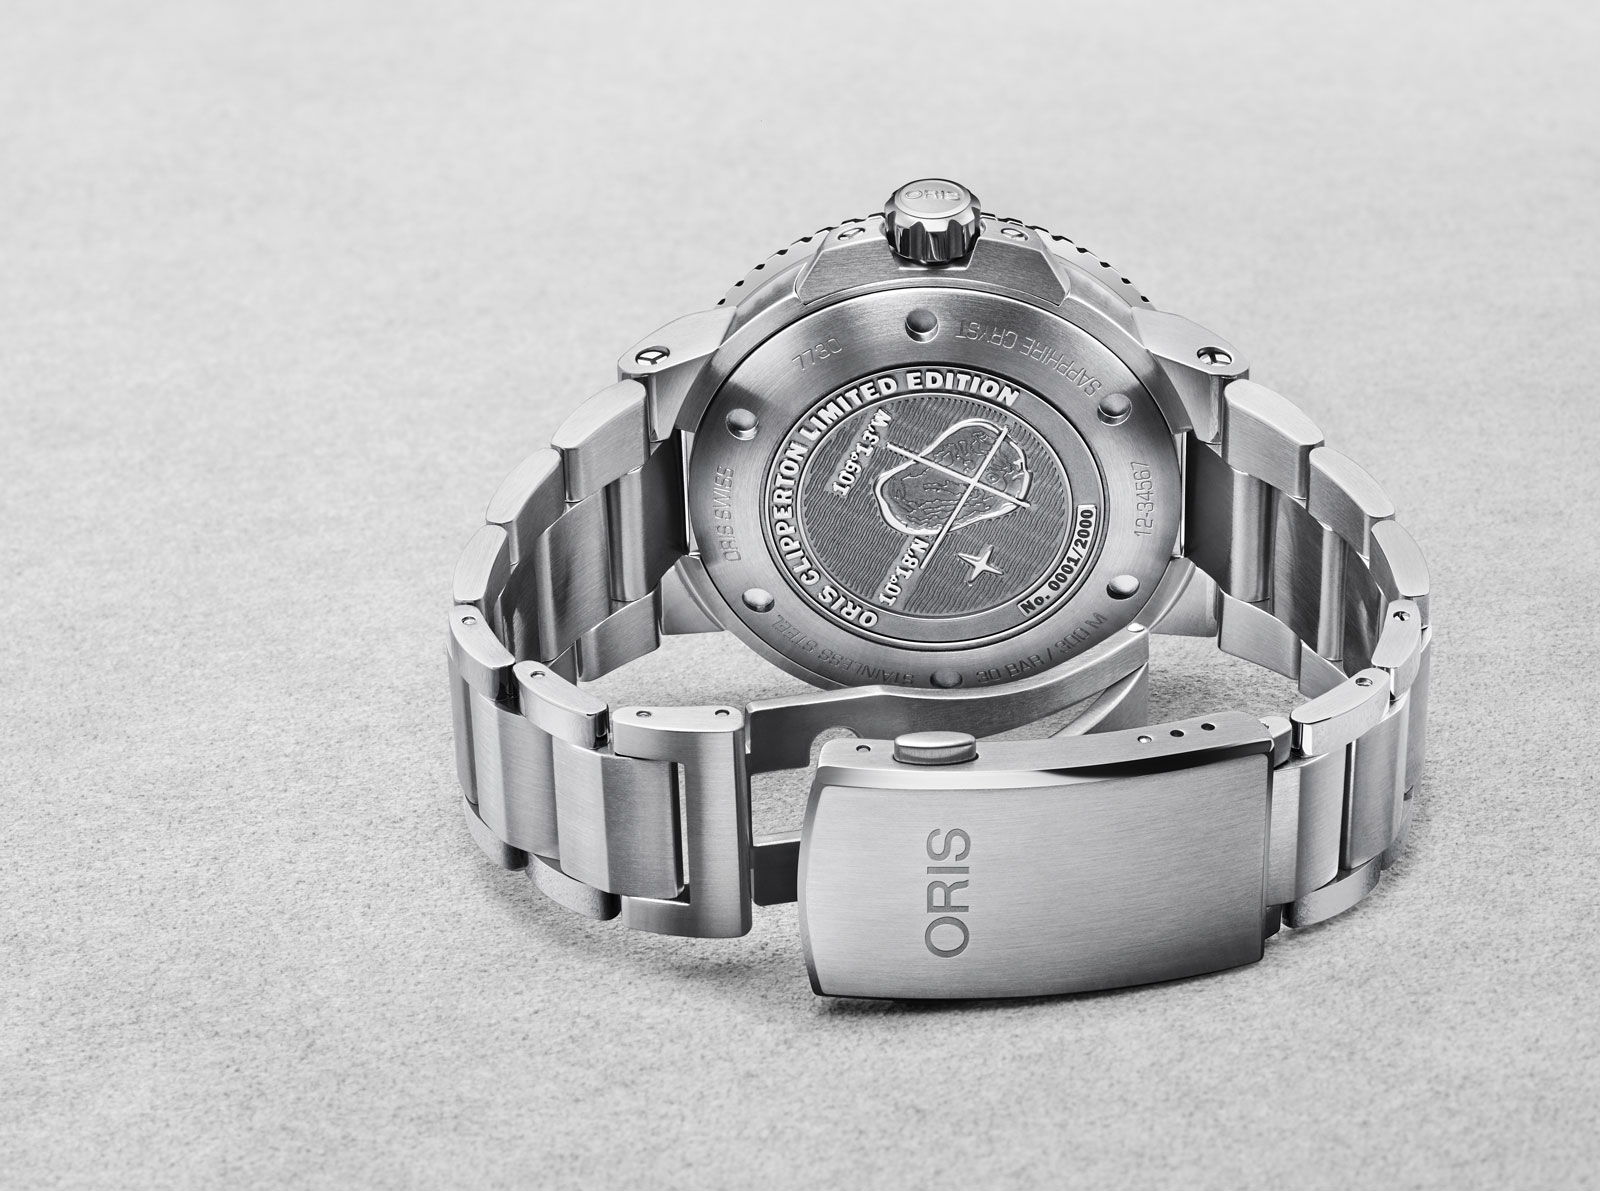 AQUIS Clipperton Limited Edition - feature